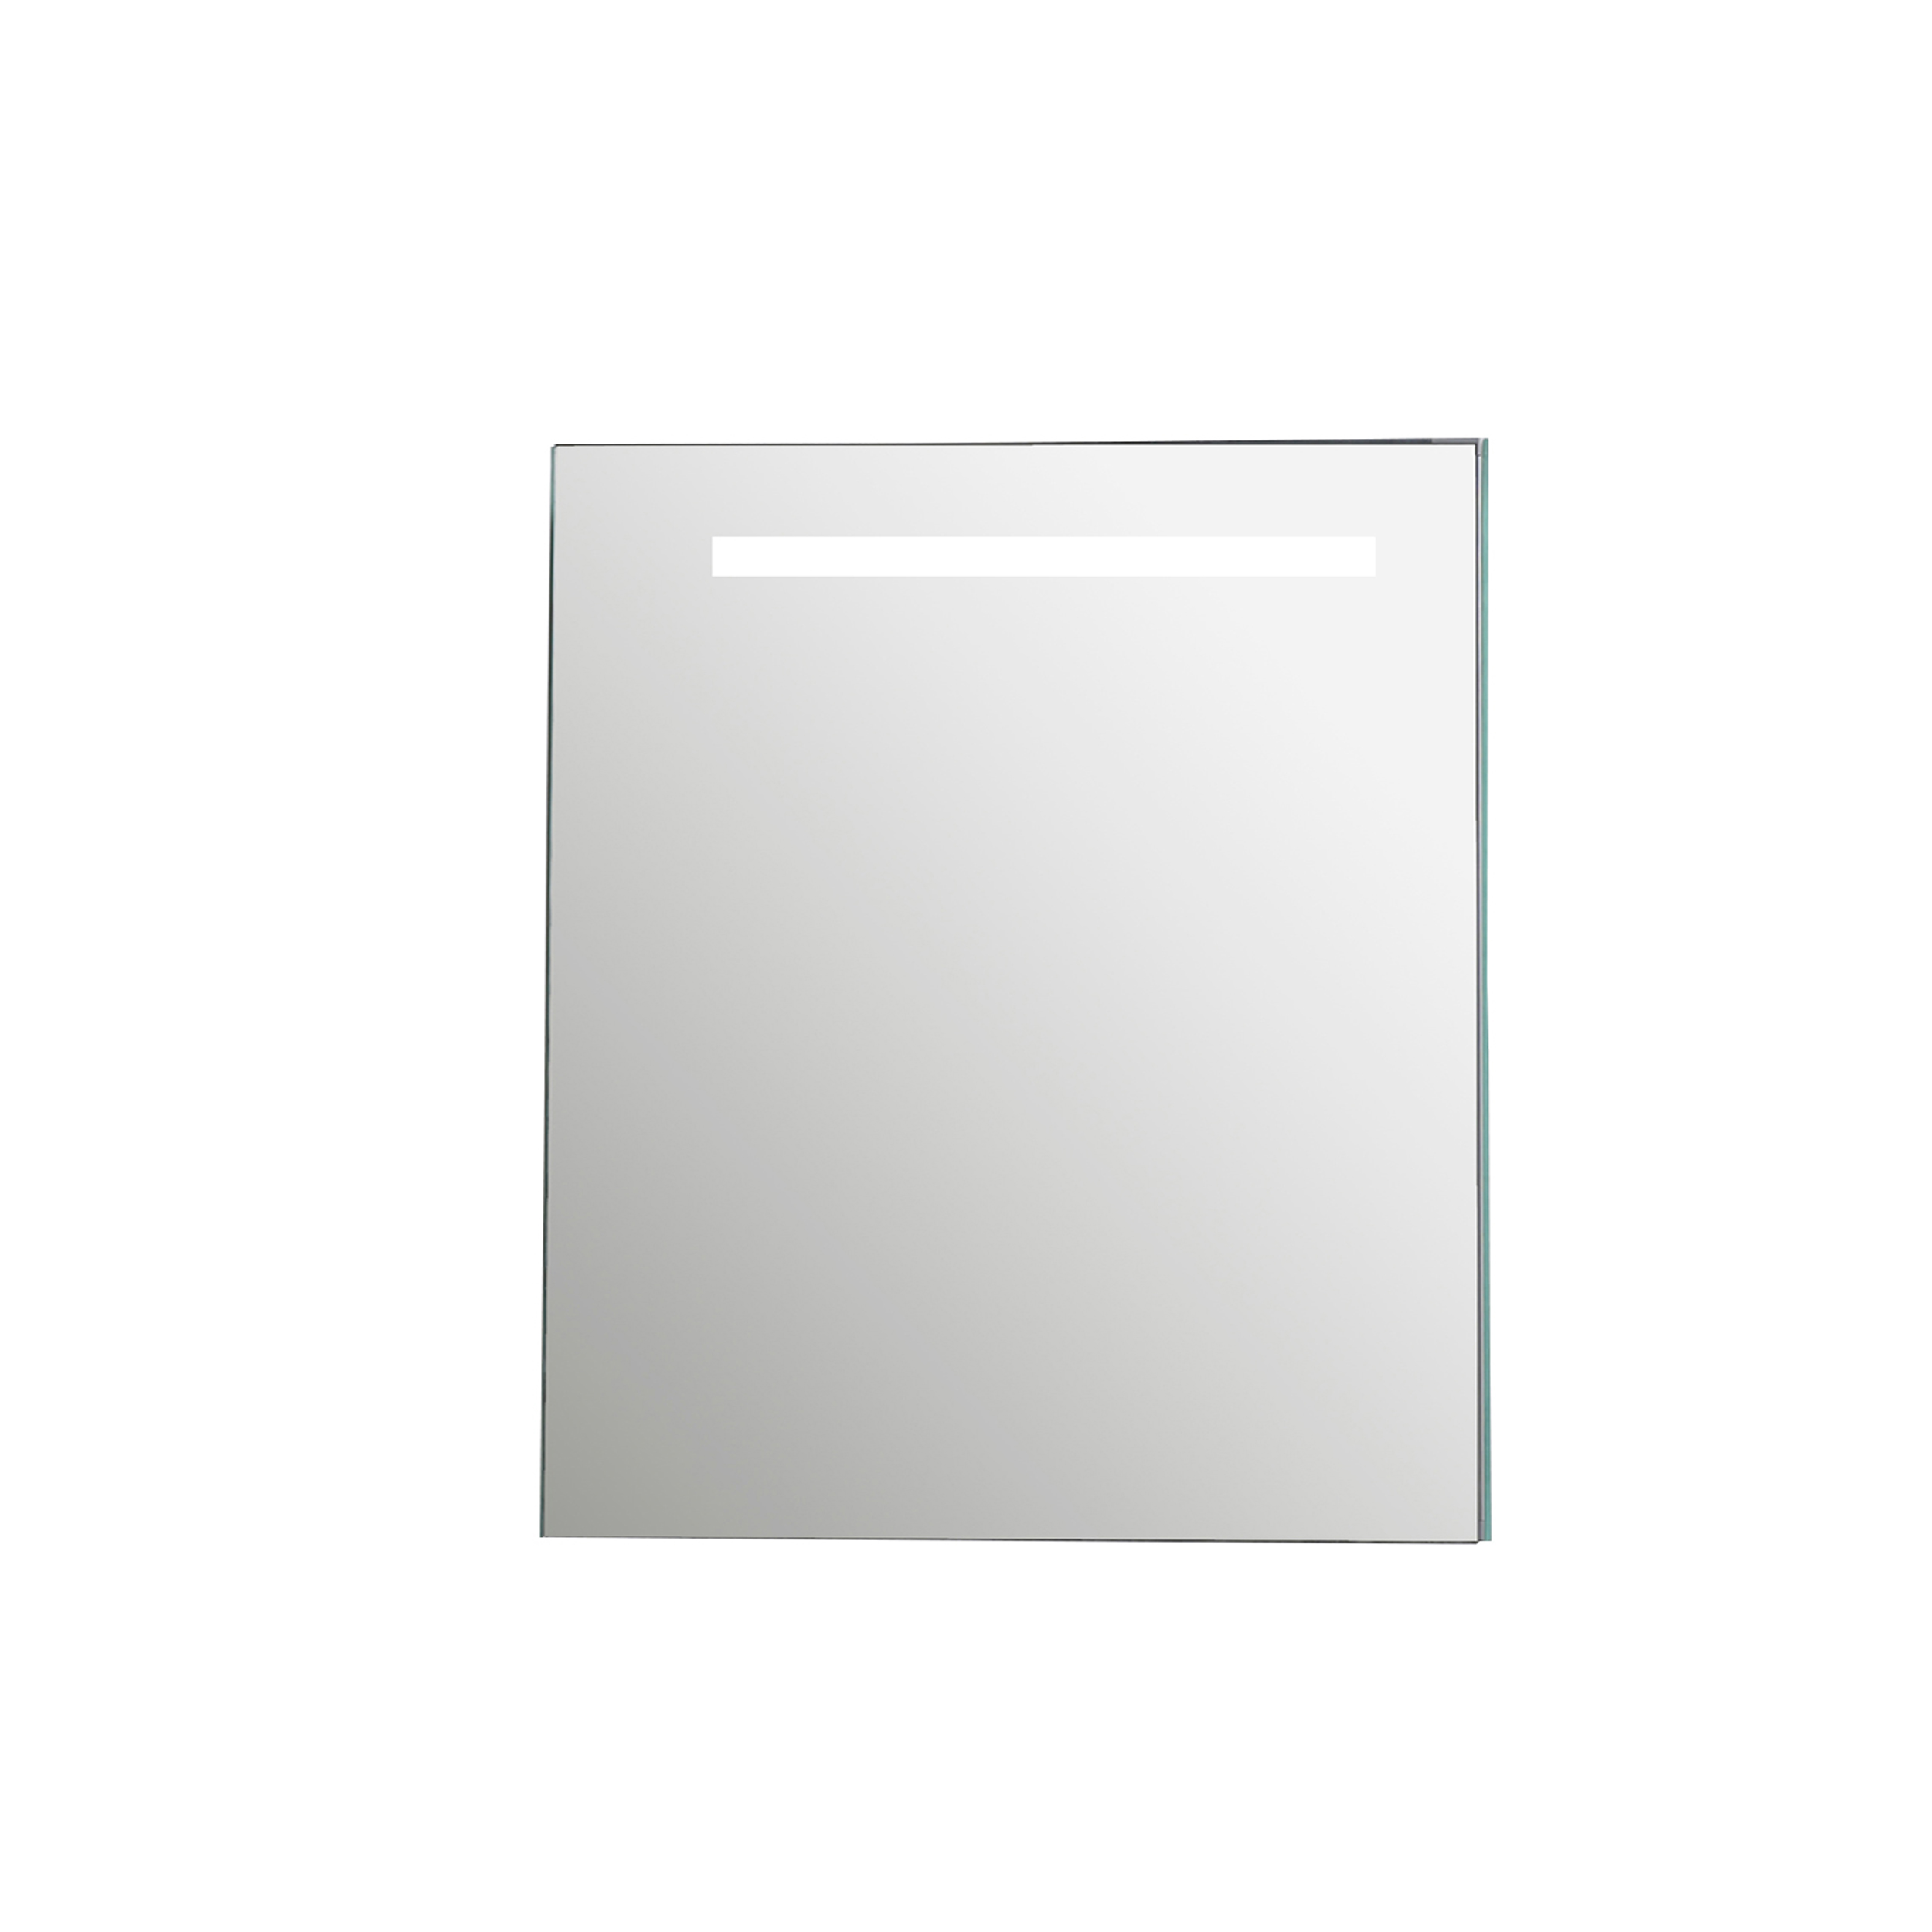 EVMR610 24AL A Main - Eviva Lazy 24 inch all mirror wall mount/recessed medicine cabinet with LED lights